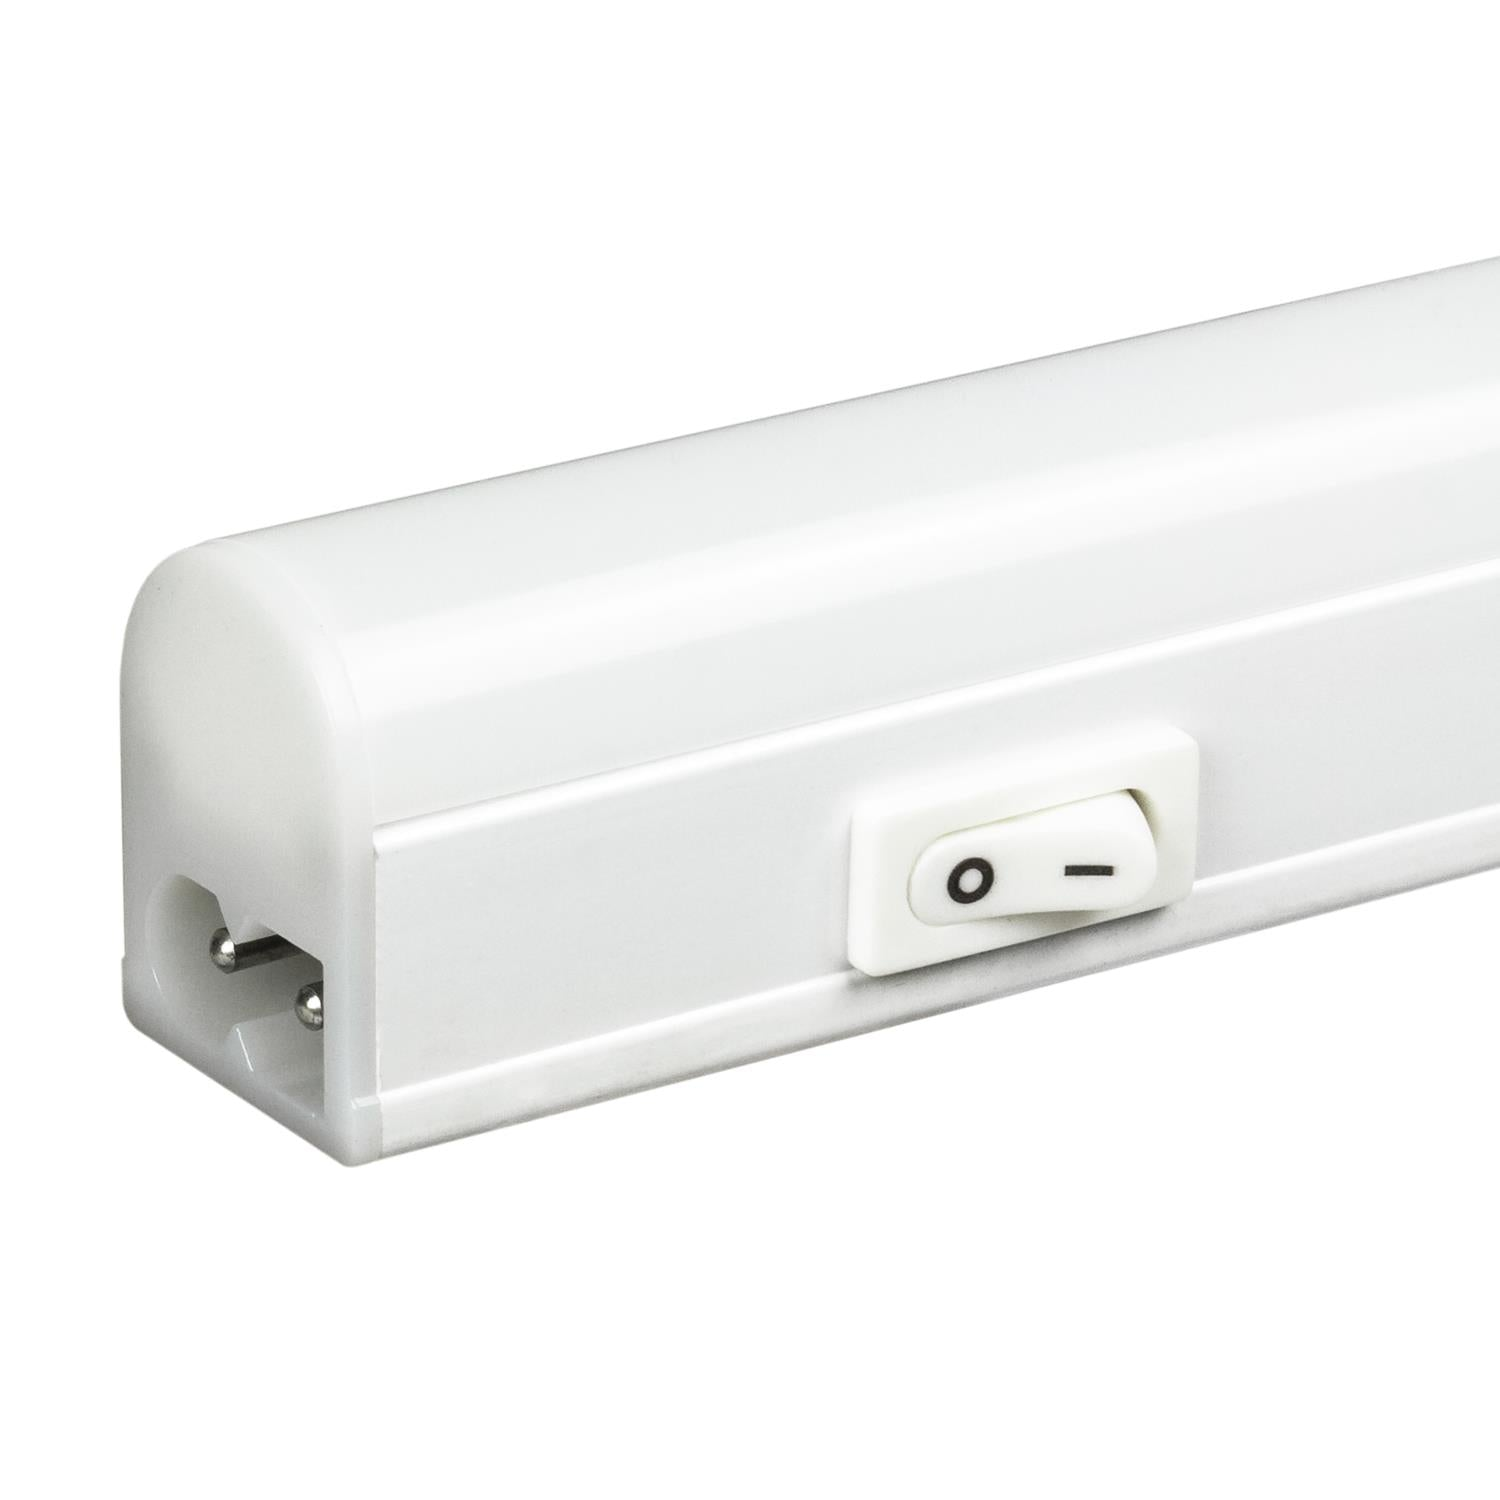 SUNLITE 4w 12in Linkable Under Cabinet Light Fixture - 3000K